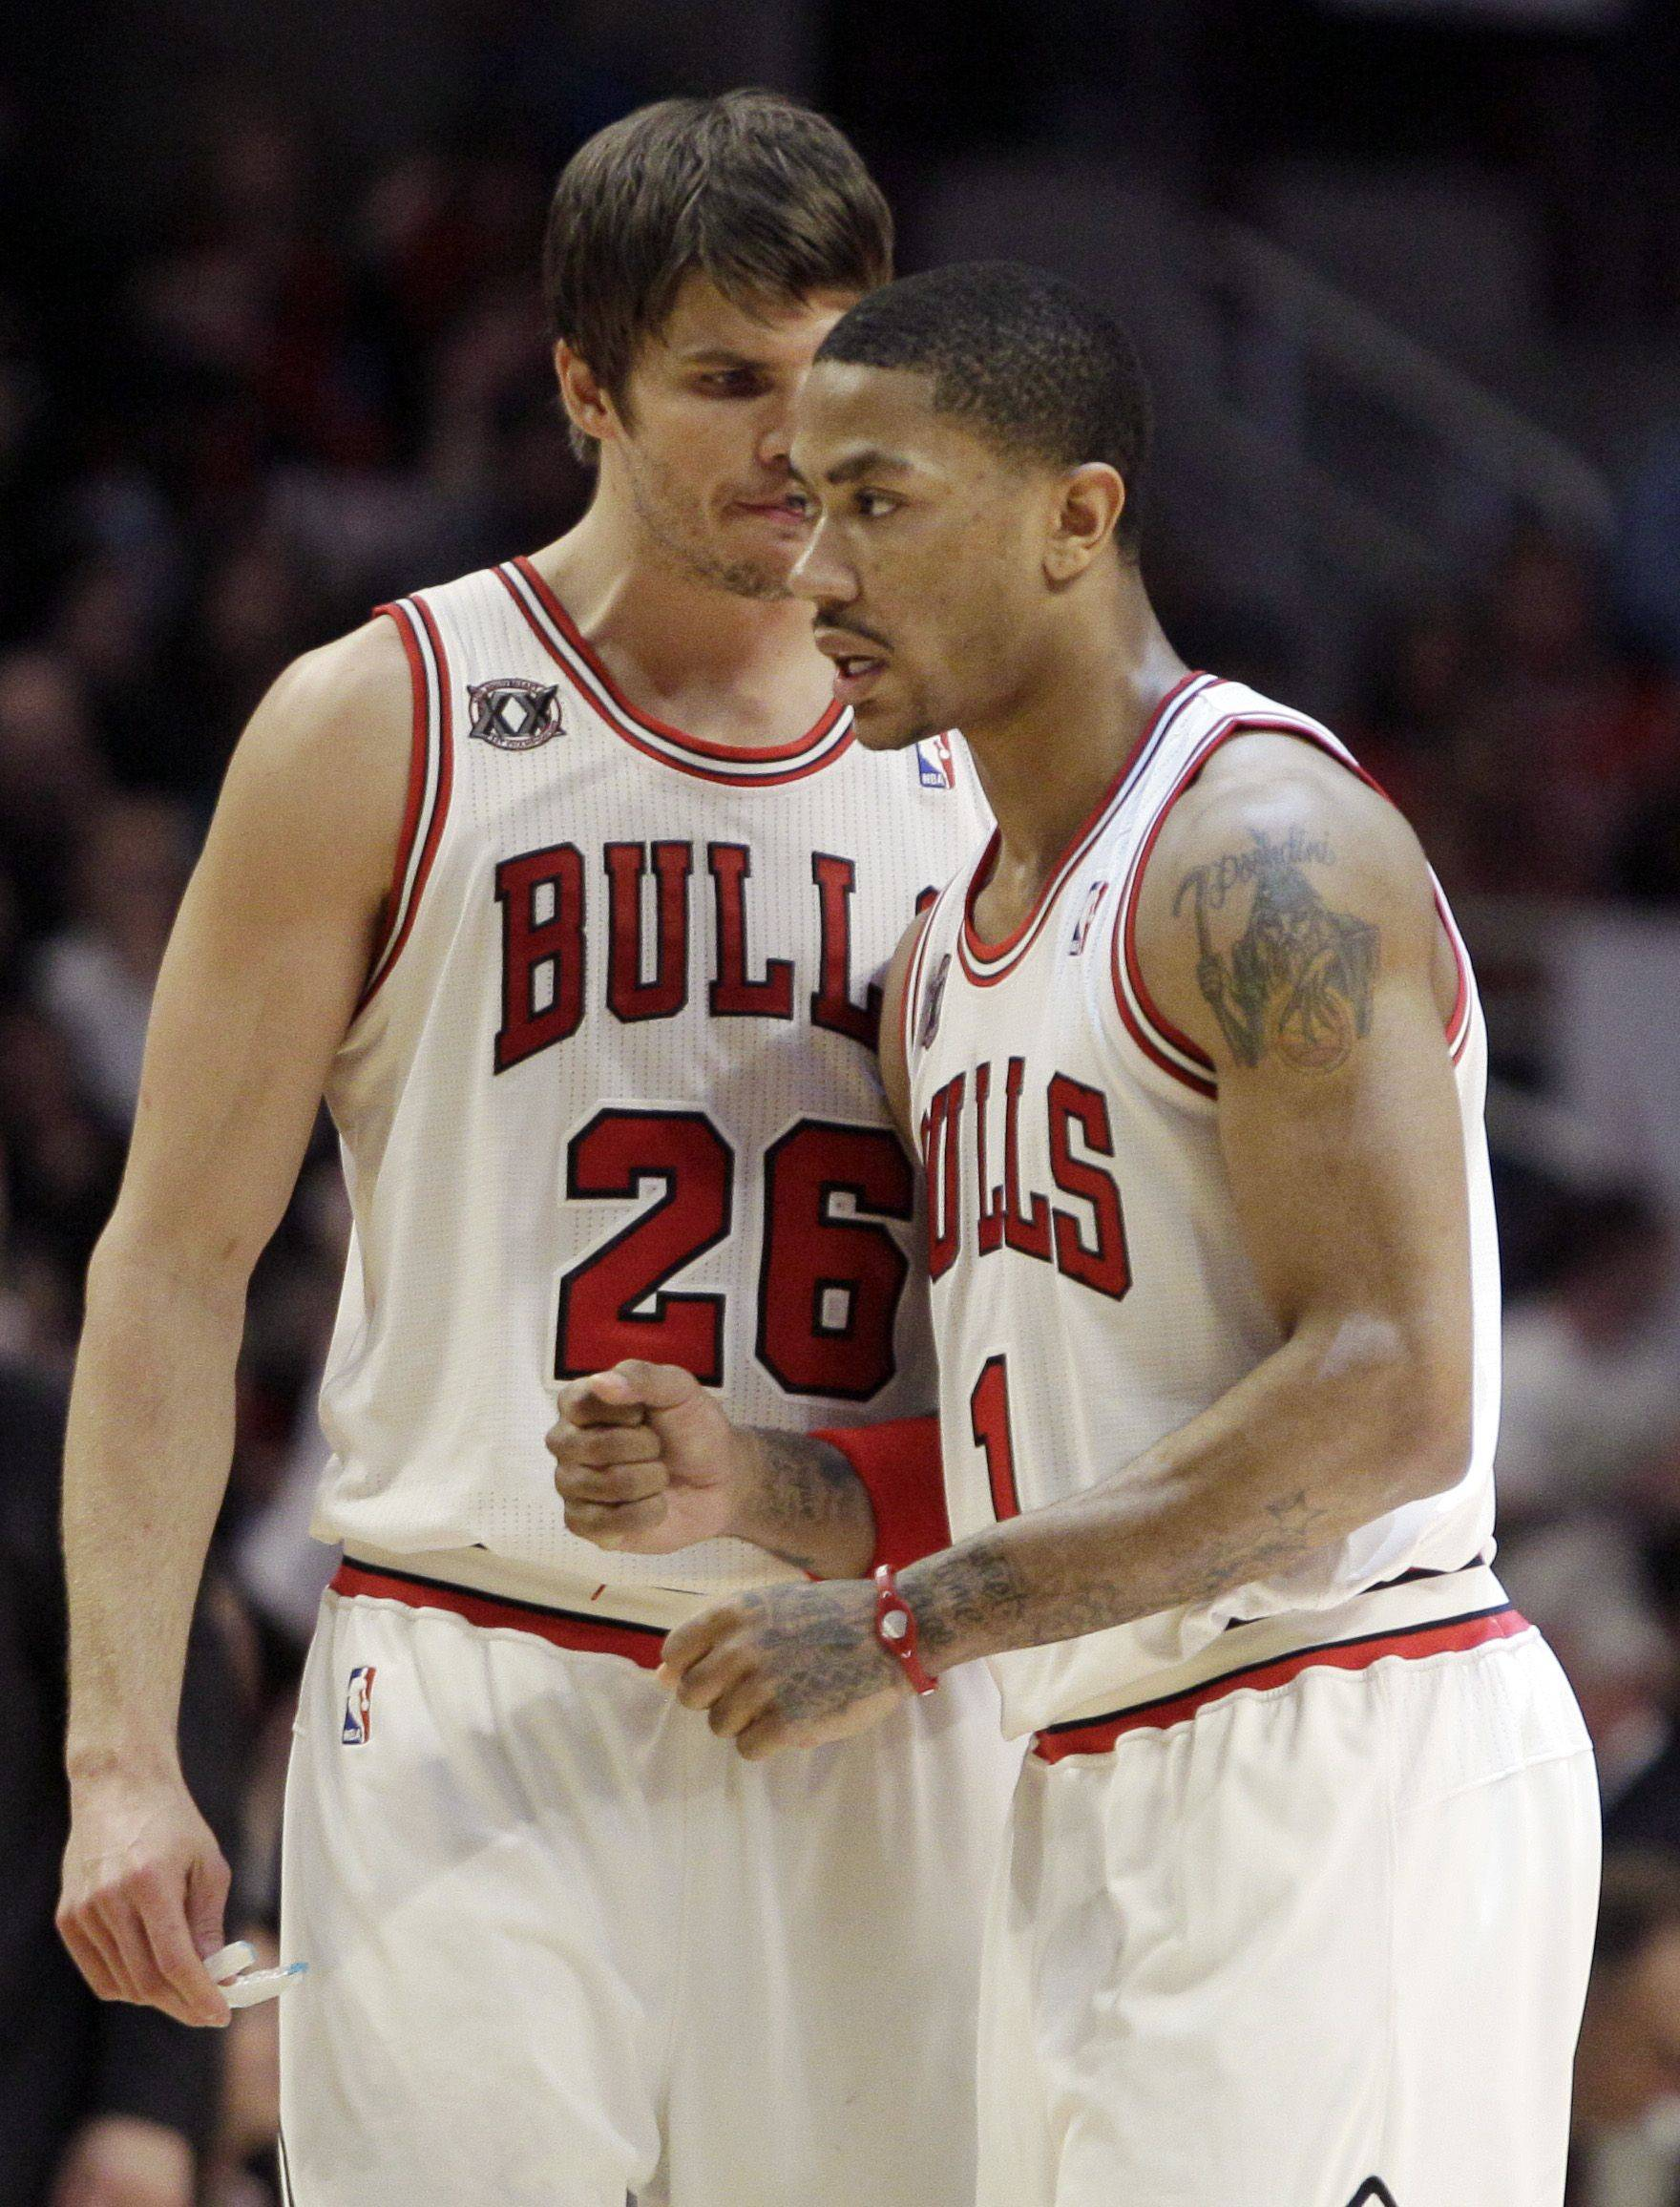 Does Bulls' strong finish really matter?